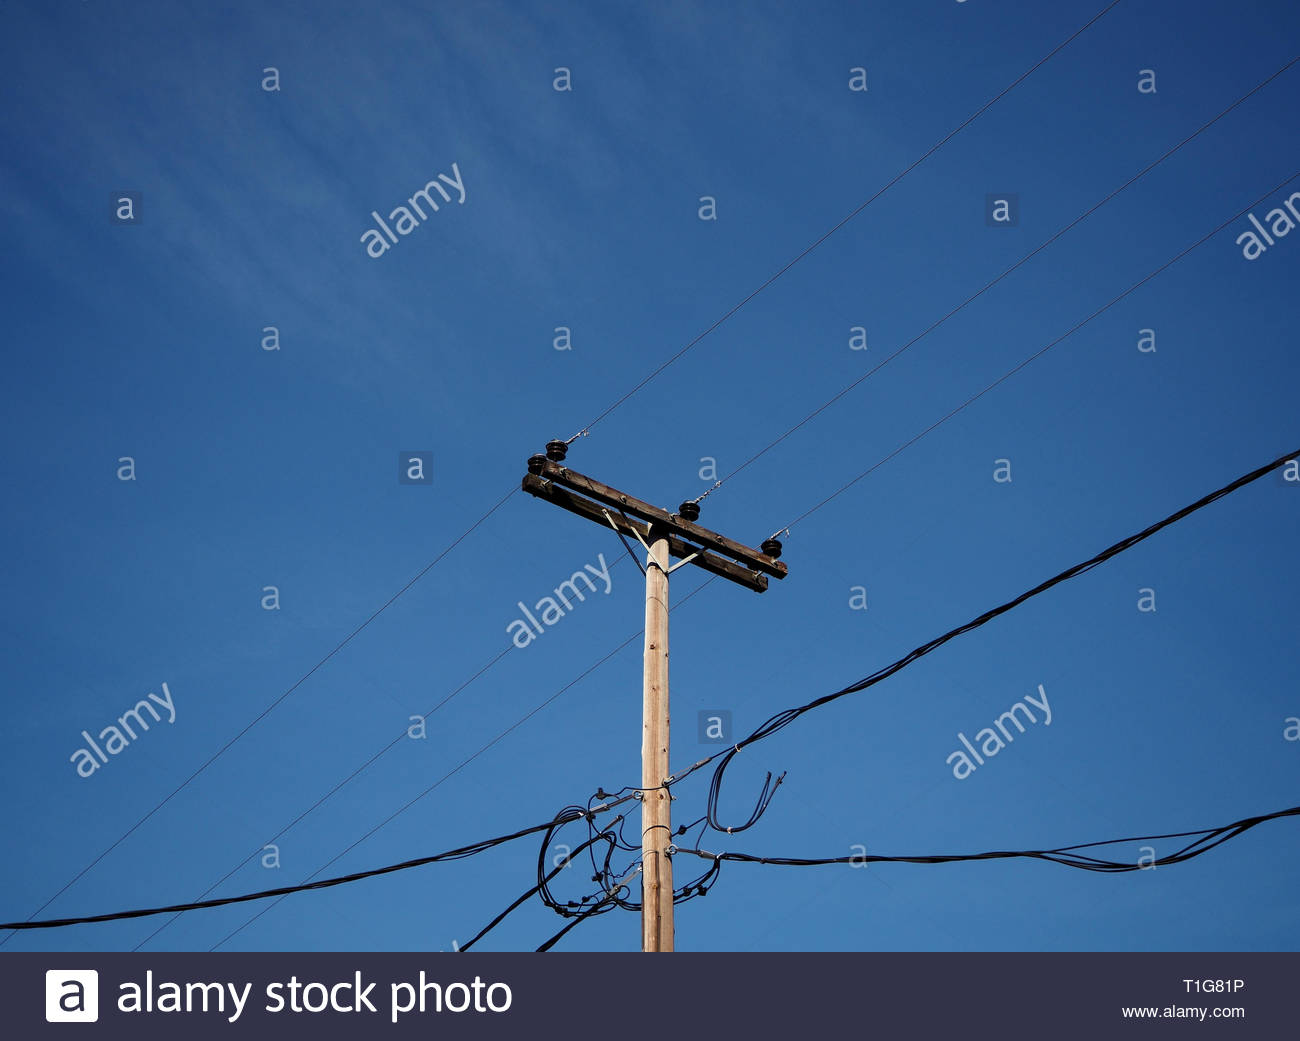 A grids view ,electric current pylon and cables isolated against blue sky - Stock Image